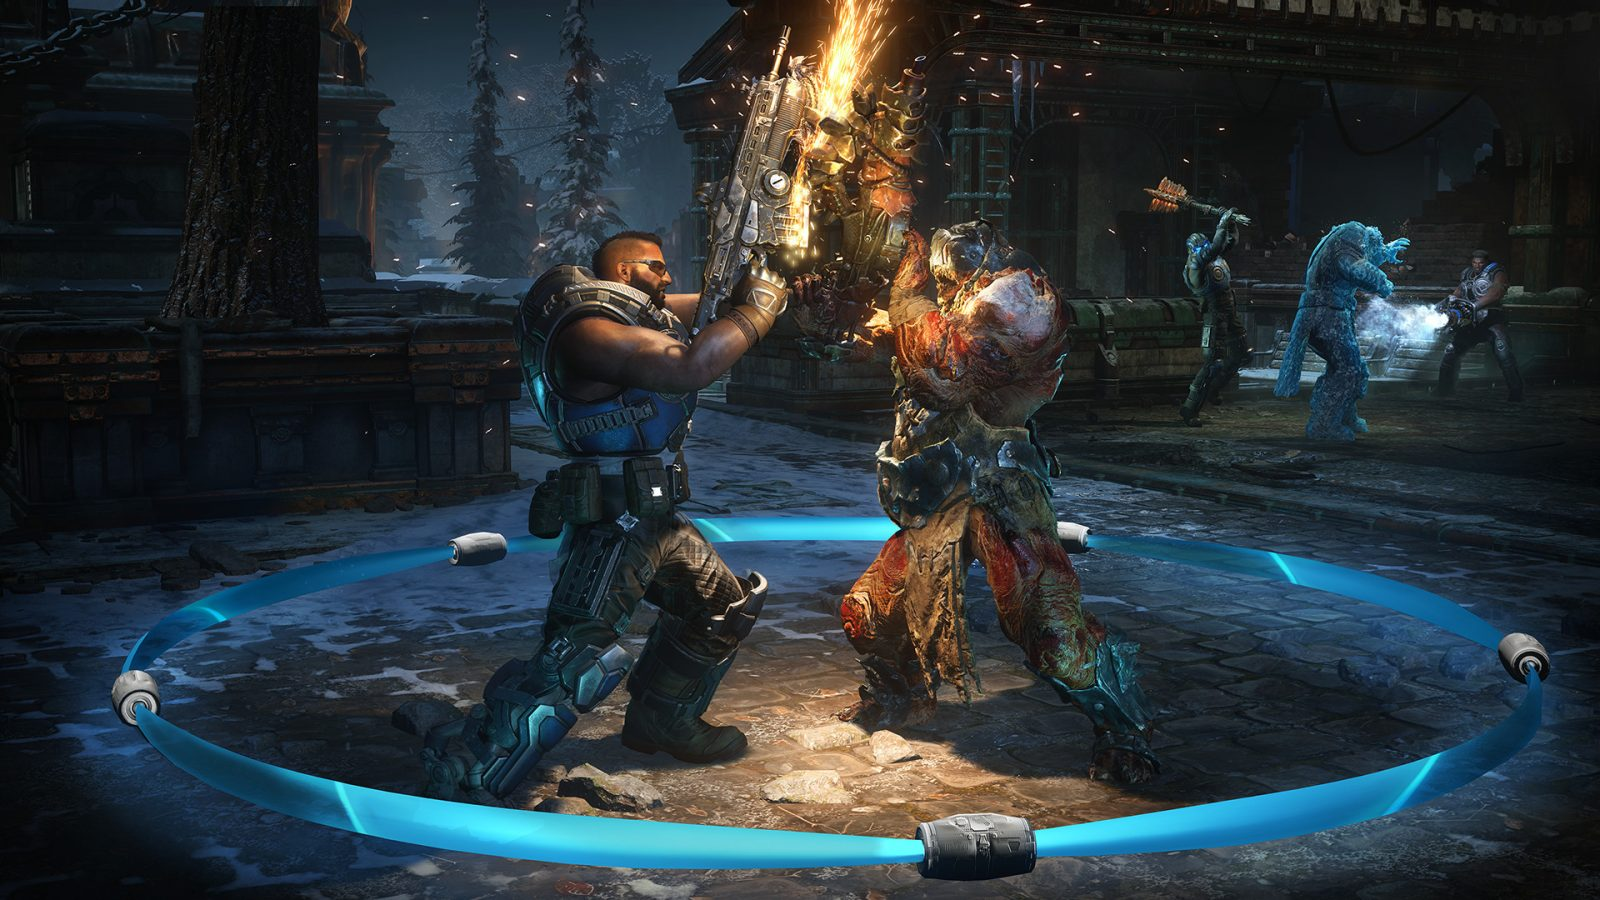 Gears 5 outsold Gears 4, even though it's on Game Pass